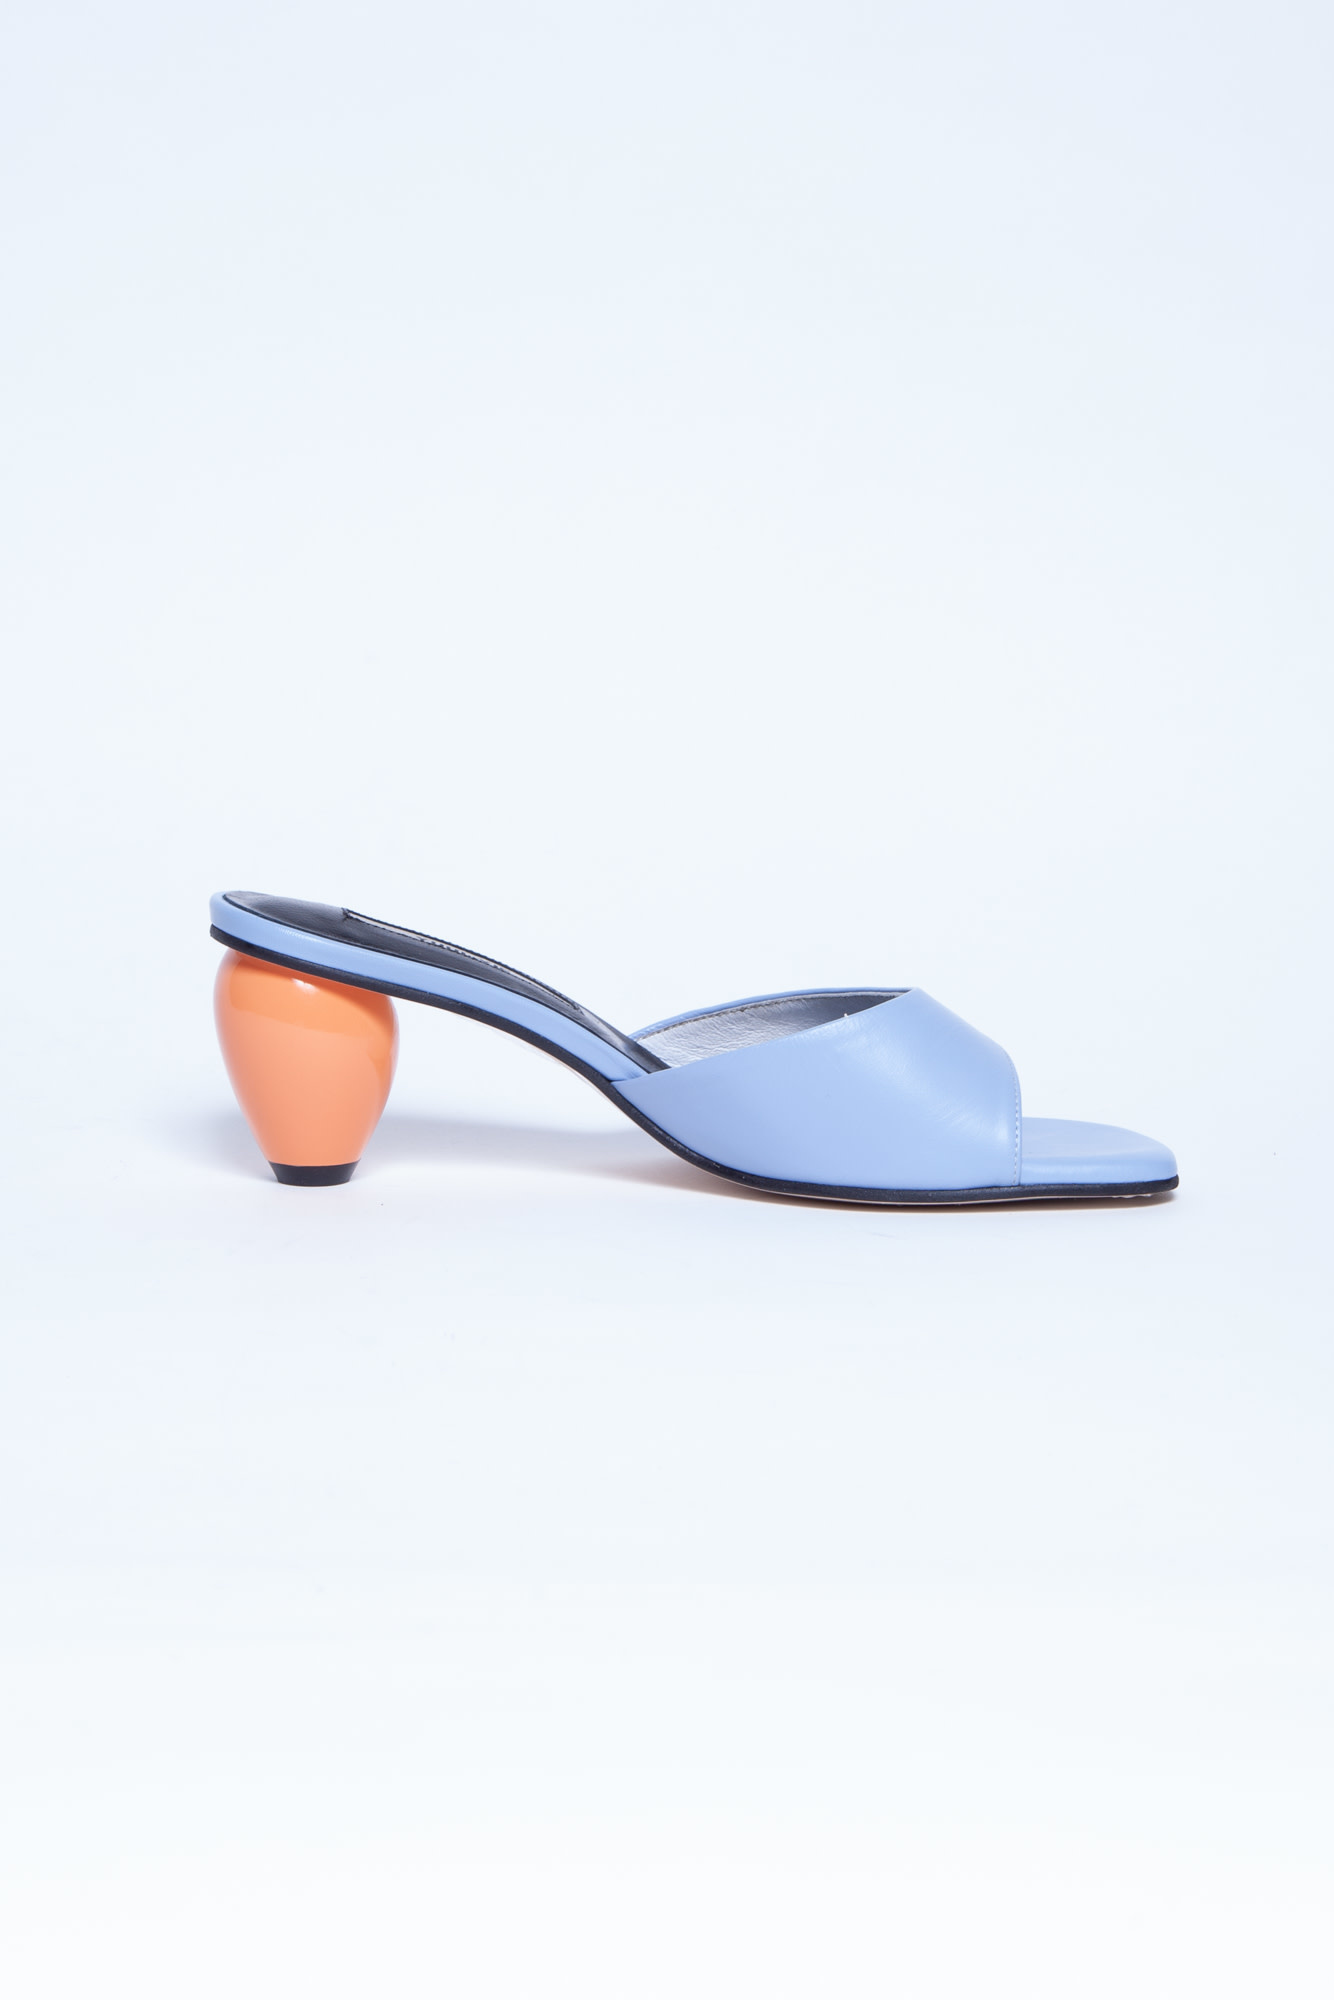 Yuul Yie  BLUE LEATHER SANDALS WITH ORANGE ROUND HEELS